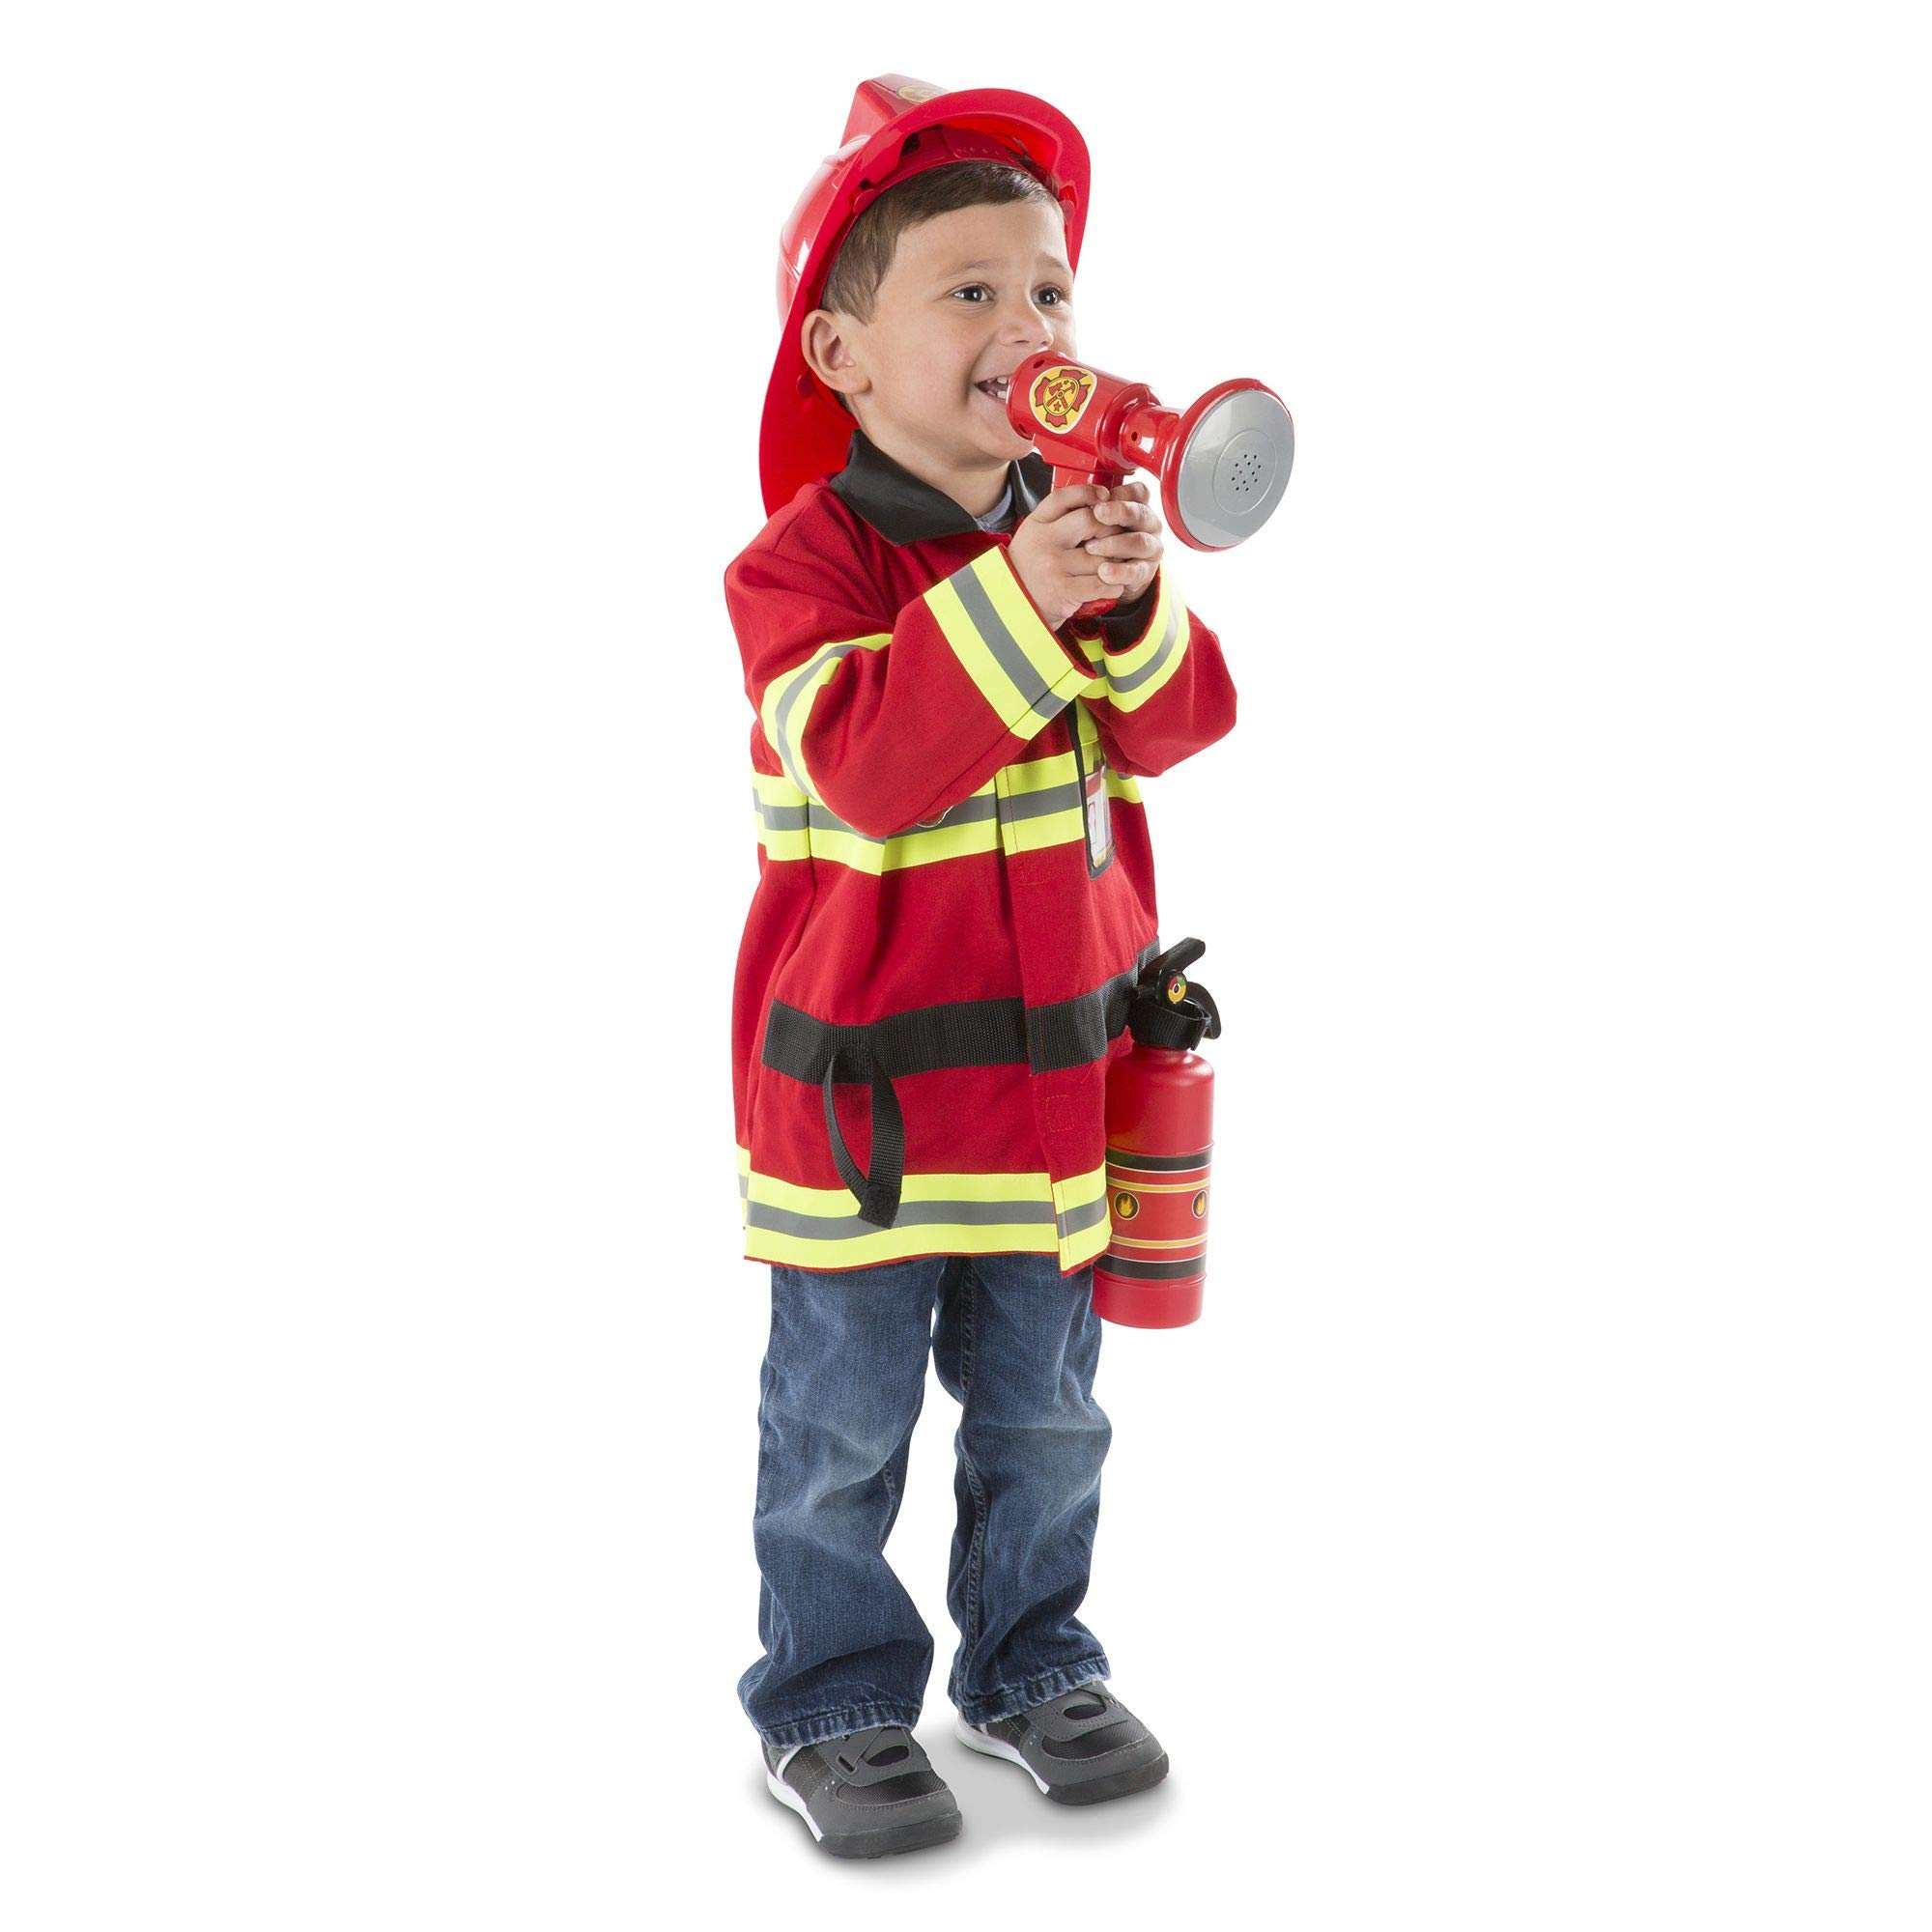 Melissa & Doug Fire Chief Role Play Costume Set, Pretend Play, Frustration-Free Packaging, Bright Red, 17.5'' H x 24'' W x 2'' L by Melissa & Doug (Image #1)